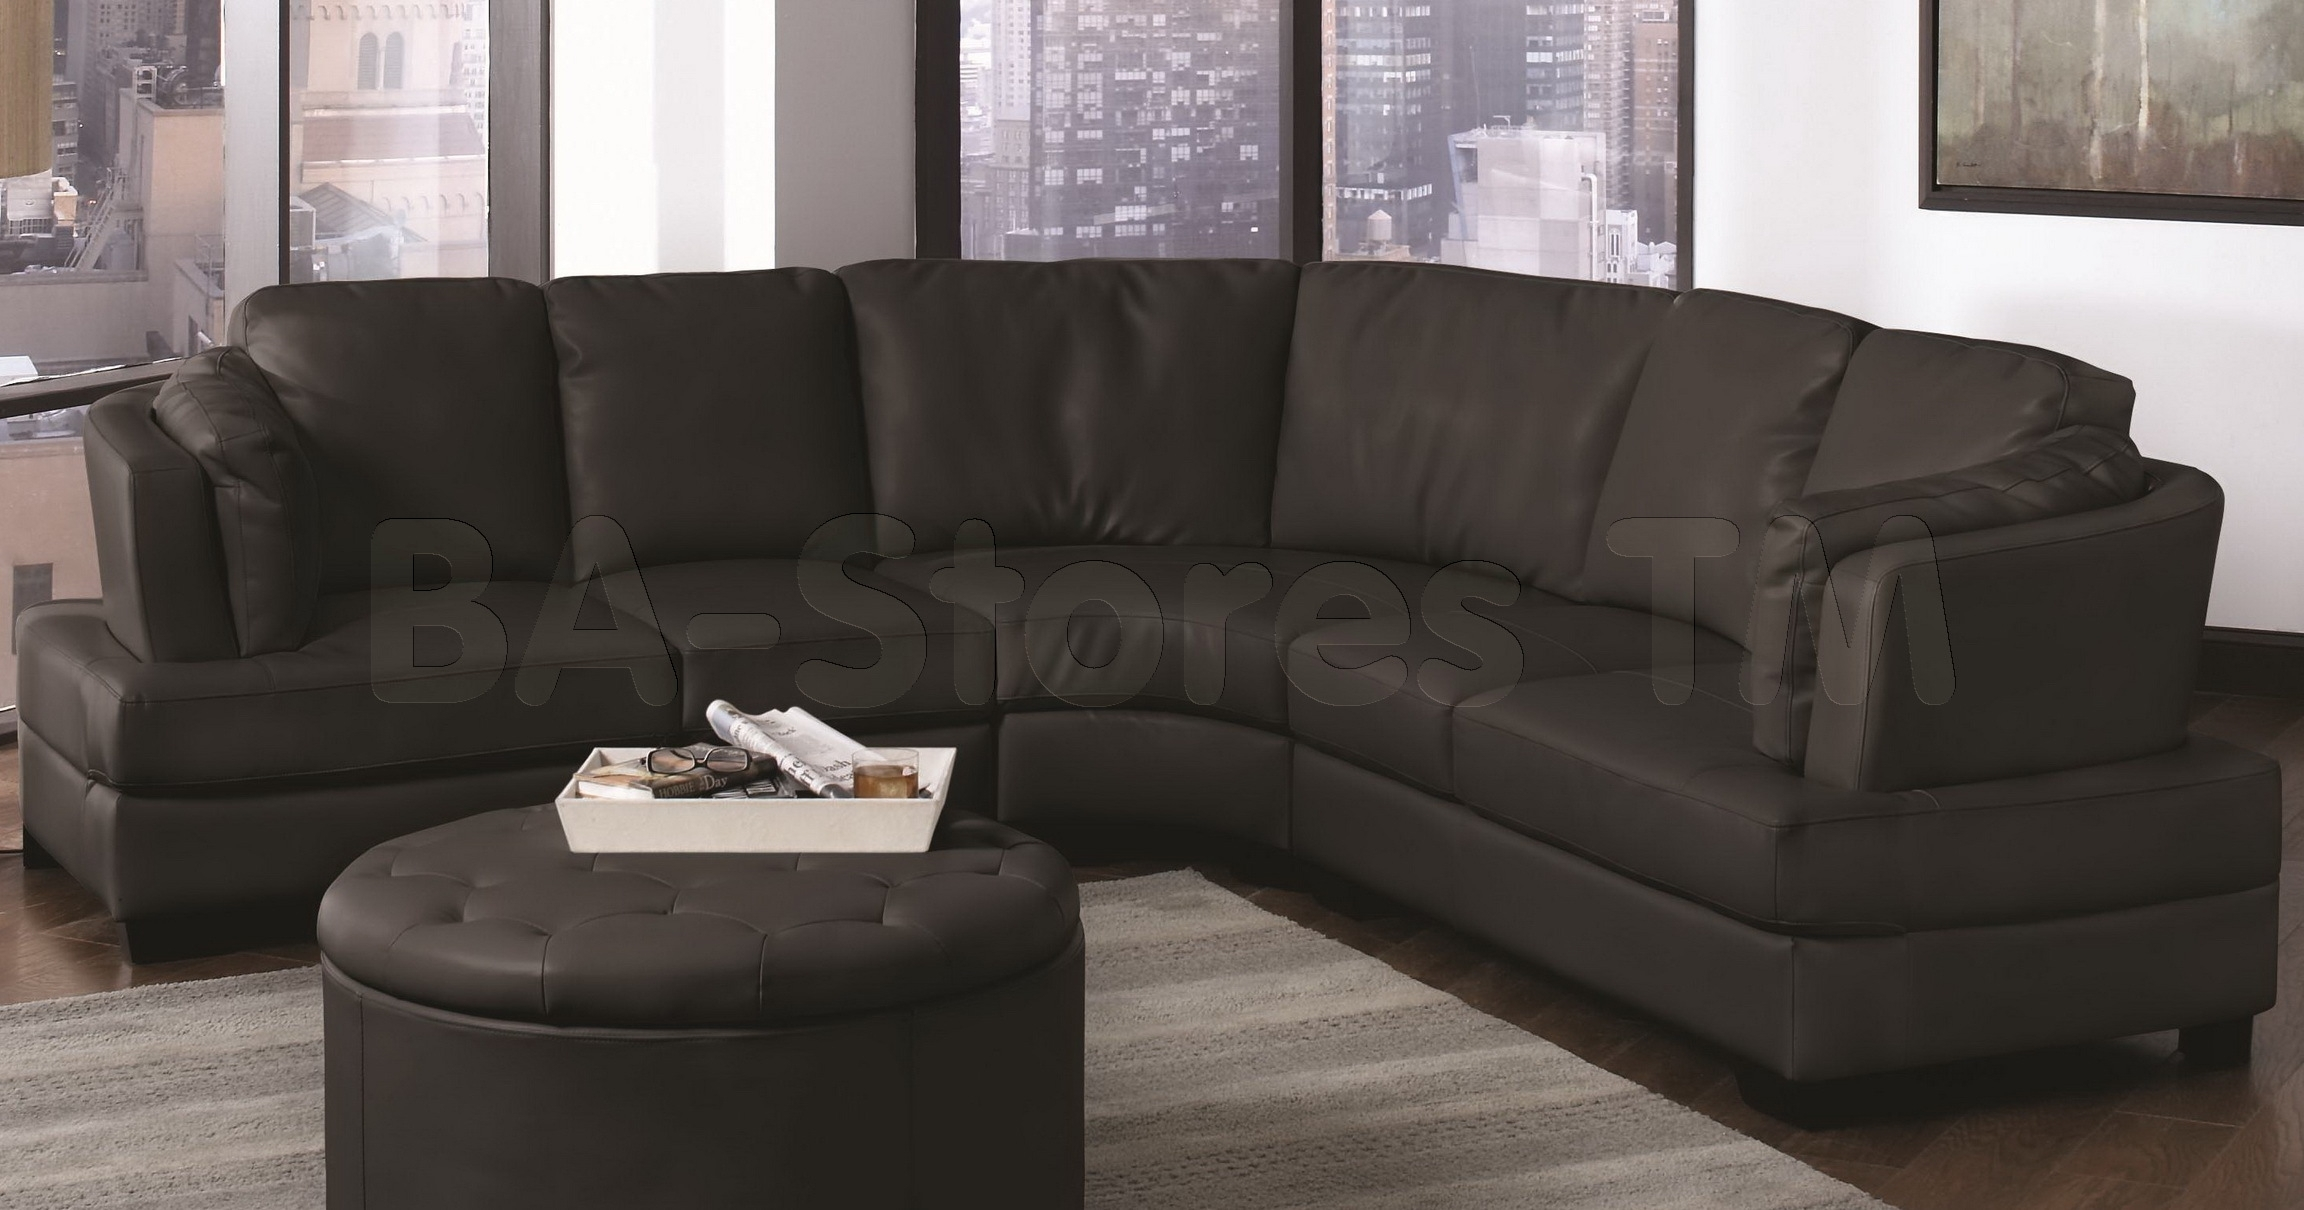 Amazing Round Sectional Sofa 63 With Additional Modern Sofa Ideas With Regard To Round Sectional Sofas (Image 1 of 10)